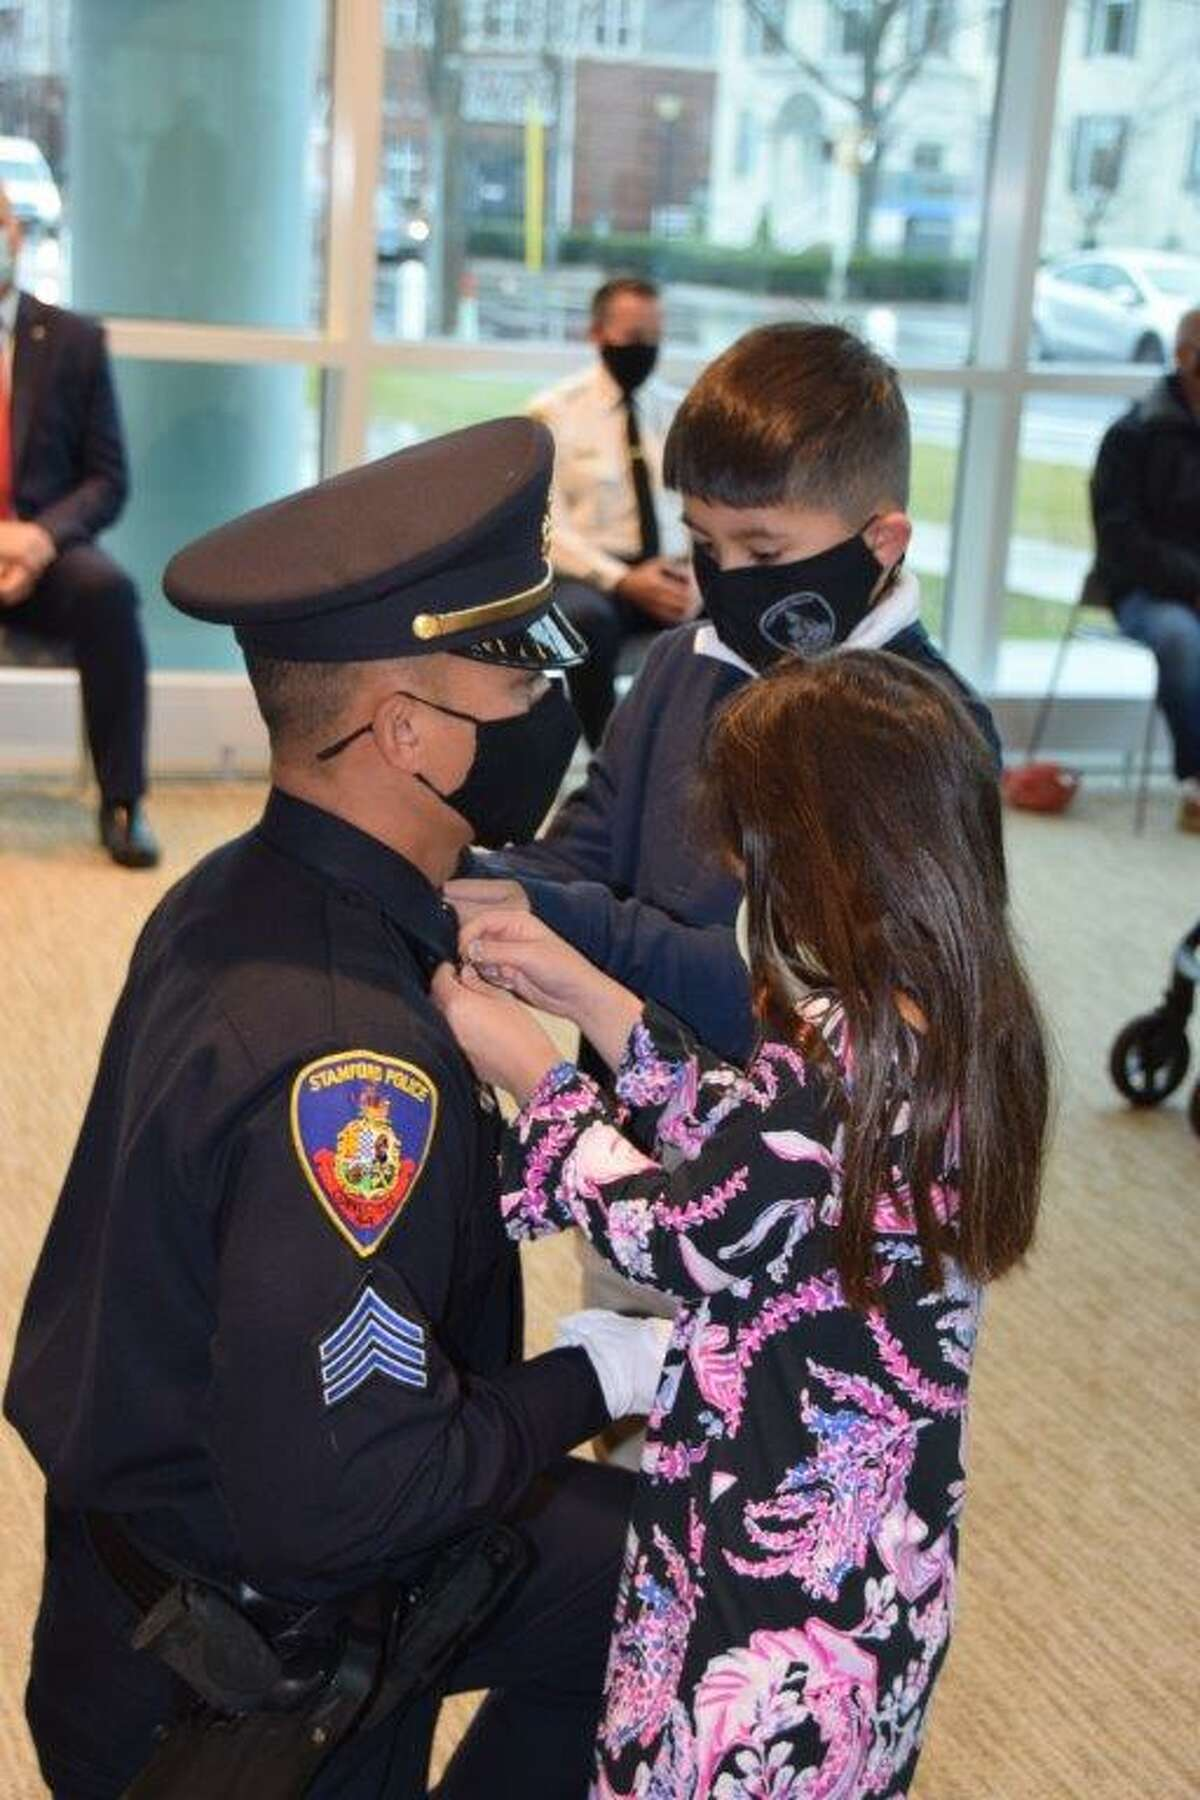 Newly minted Sgt. Michael Nguyen has his gold chevrons pinned to his collar by his son Michael Jr., 9, and daughter Kyla, 7, at a promotion ceremony held at Stamford police headquarters on Dec. 14, 2020. Felman-Merced, 32, a native of Beacon, N.Y., has been in the department for eight years.